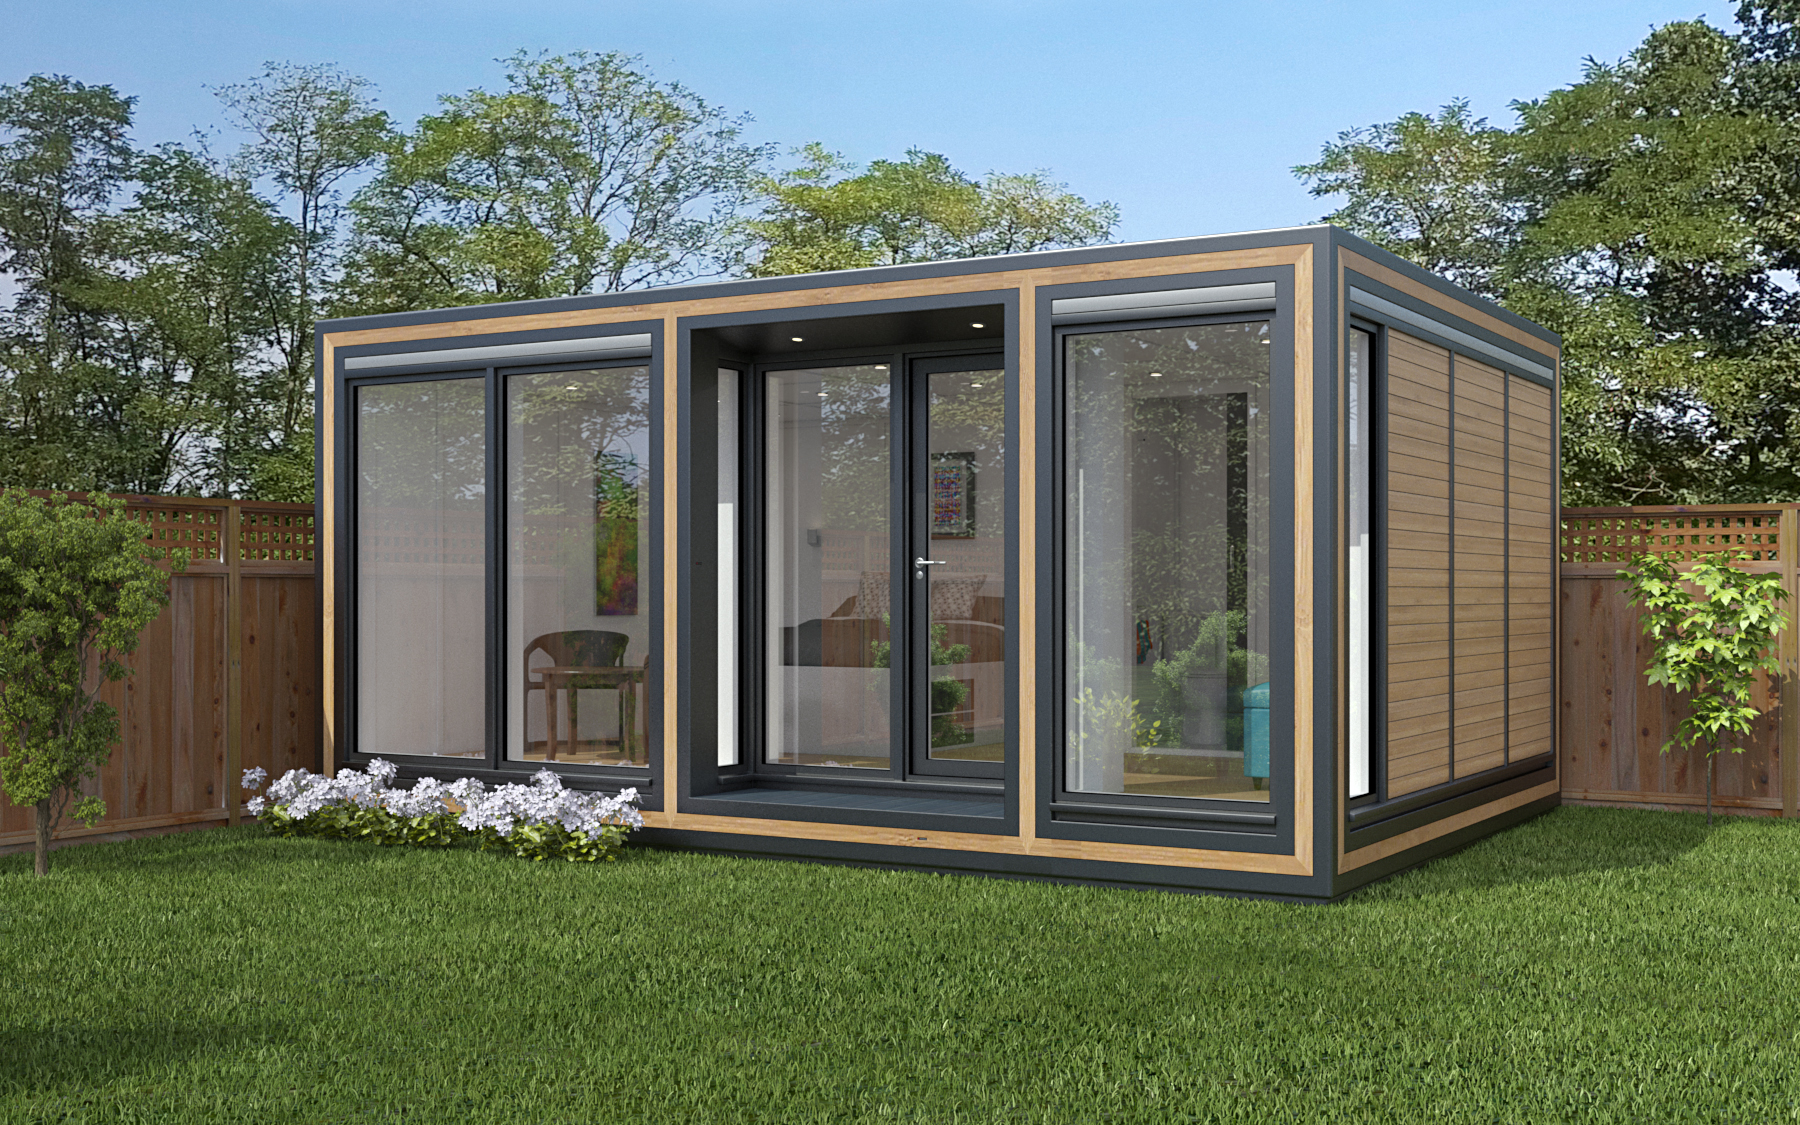 ZEDBOX 535  (5 x 3.5)  Internal Size:5800 x 4261  External Size: 5990 x 3791  Bed Options: Single or Double  Kitchen Options: Micro or Premier  Wet Room Options: Yes  Portico: Yes  Price:  £29,000     Optional Extras    Request Zedbox Catalogue